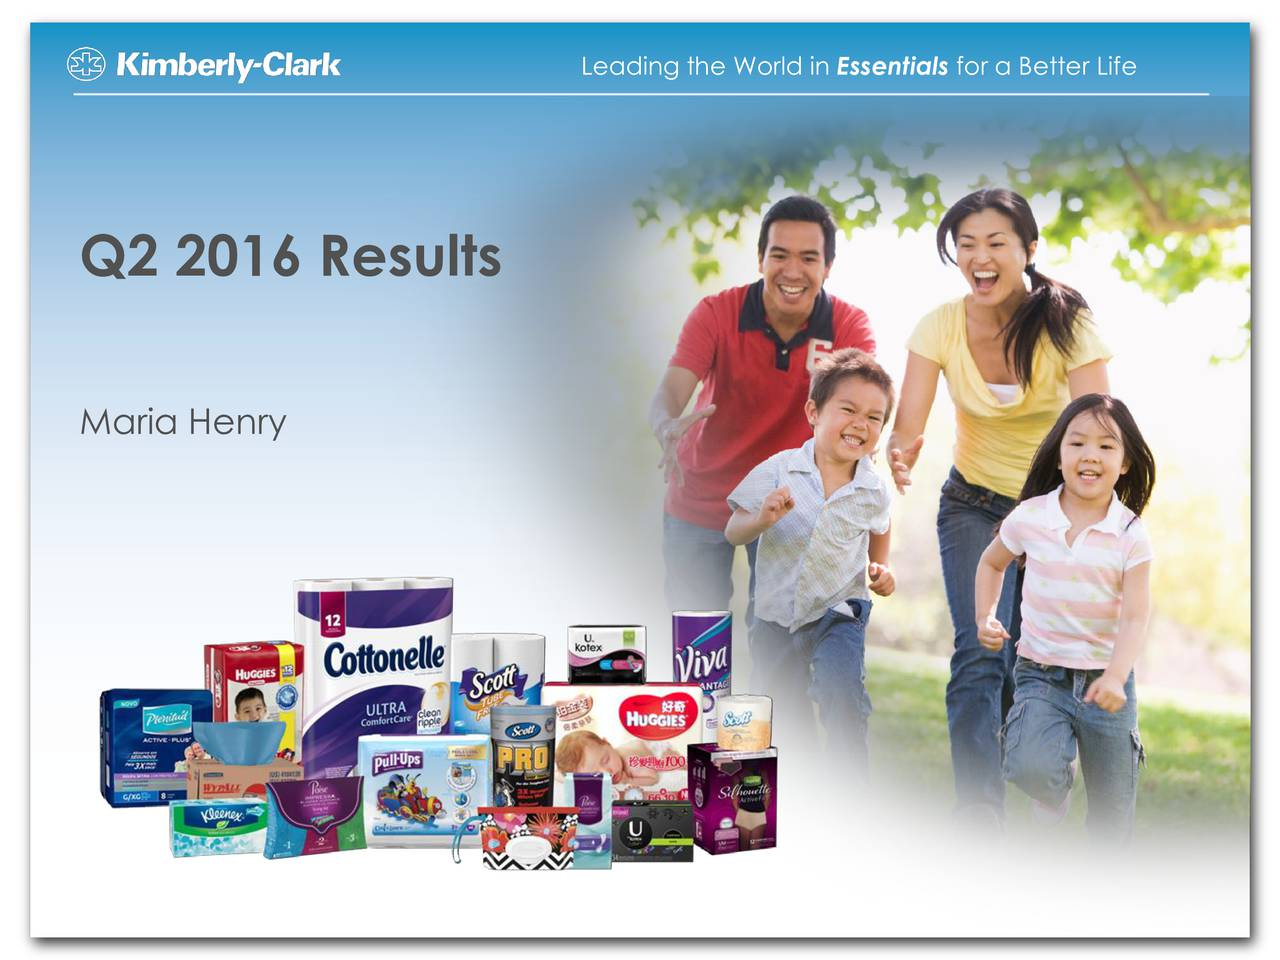 Q2 2016 Results Maria Henry